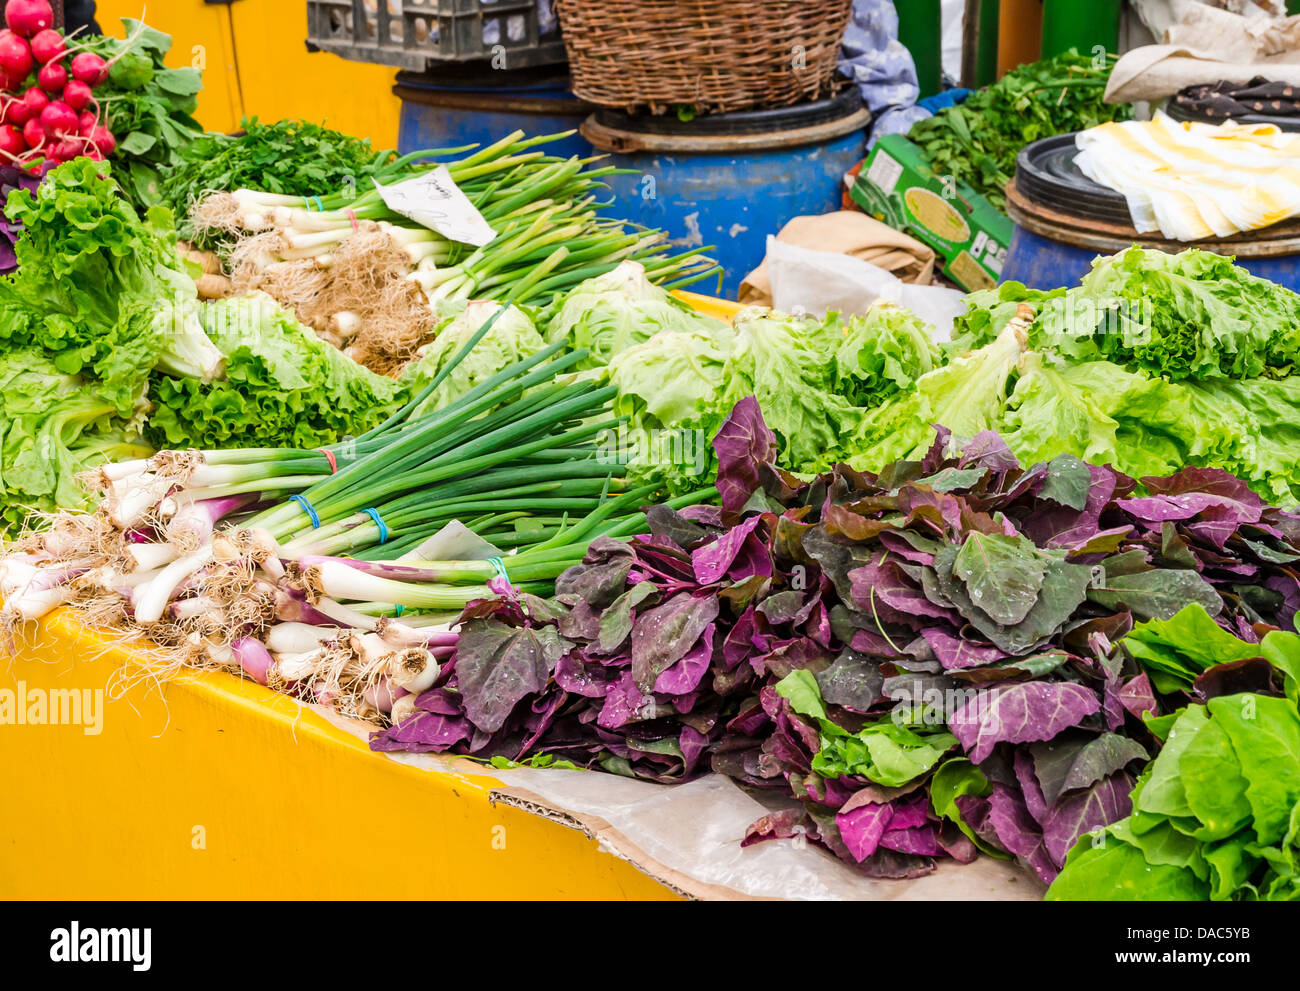 Vegetable stand at a marketplace in Brasov, Romania. - Stock Image